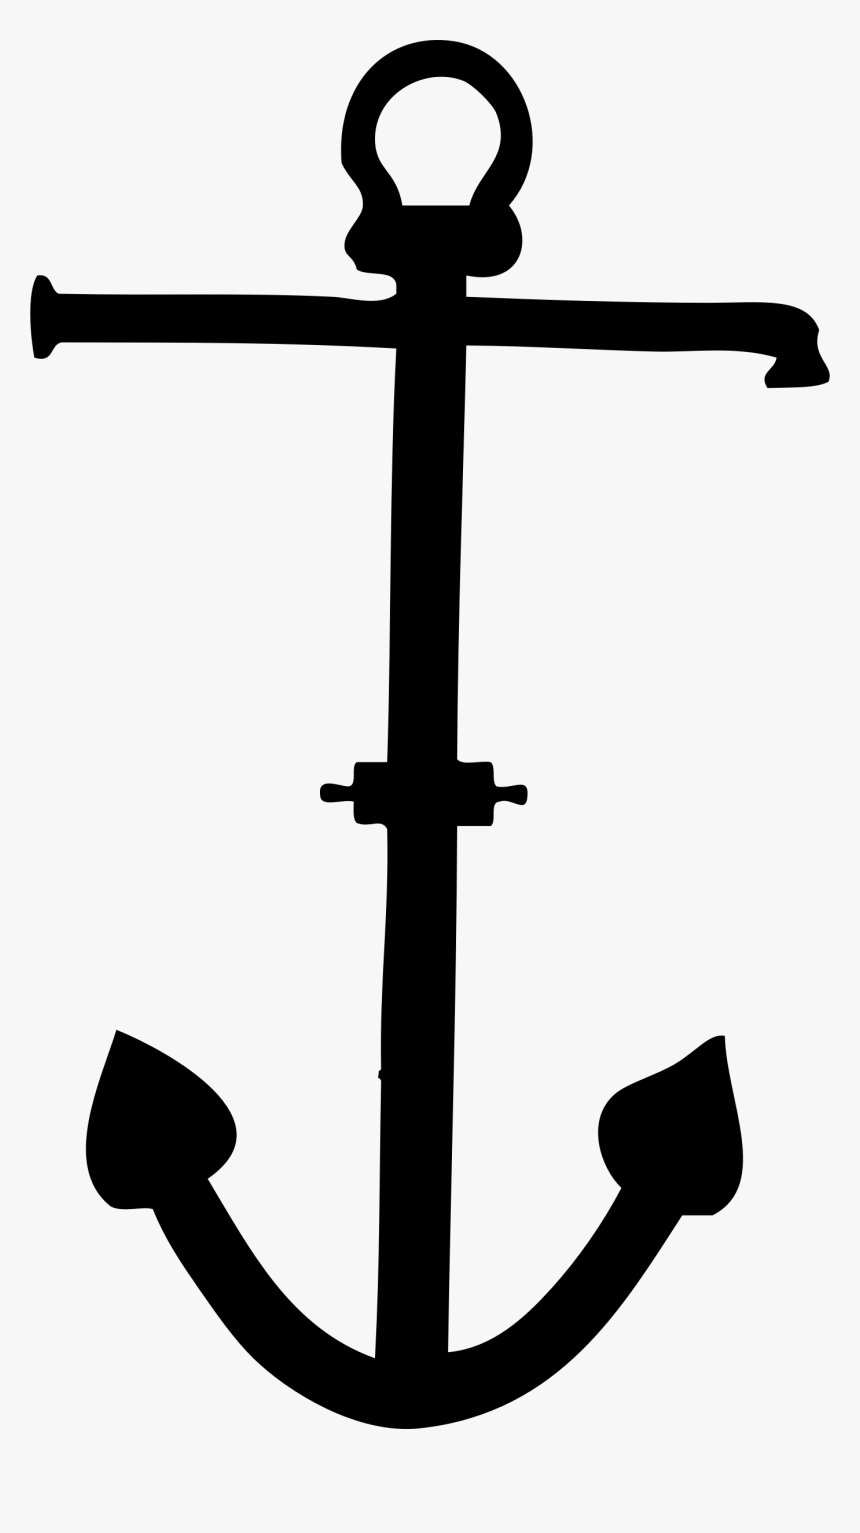 Admiralty Pattern Anchor Clip Arts - Admiralty Pattern Anchor, HD Png Download, Free Download